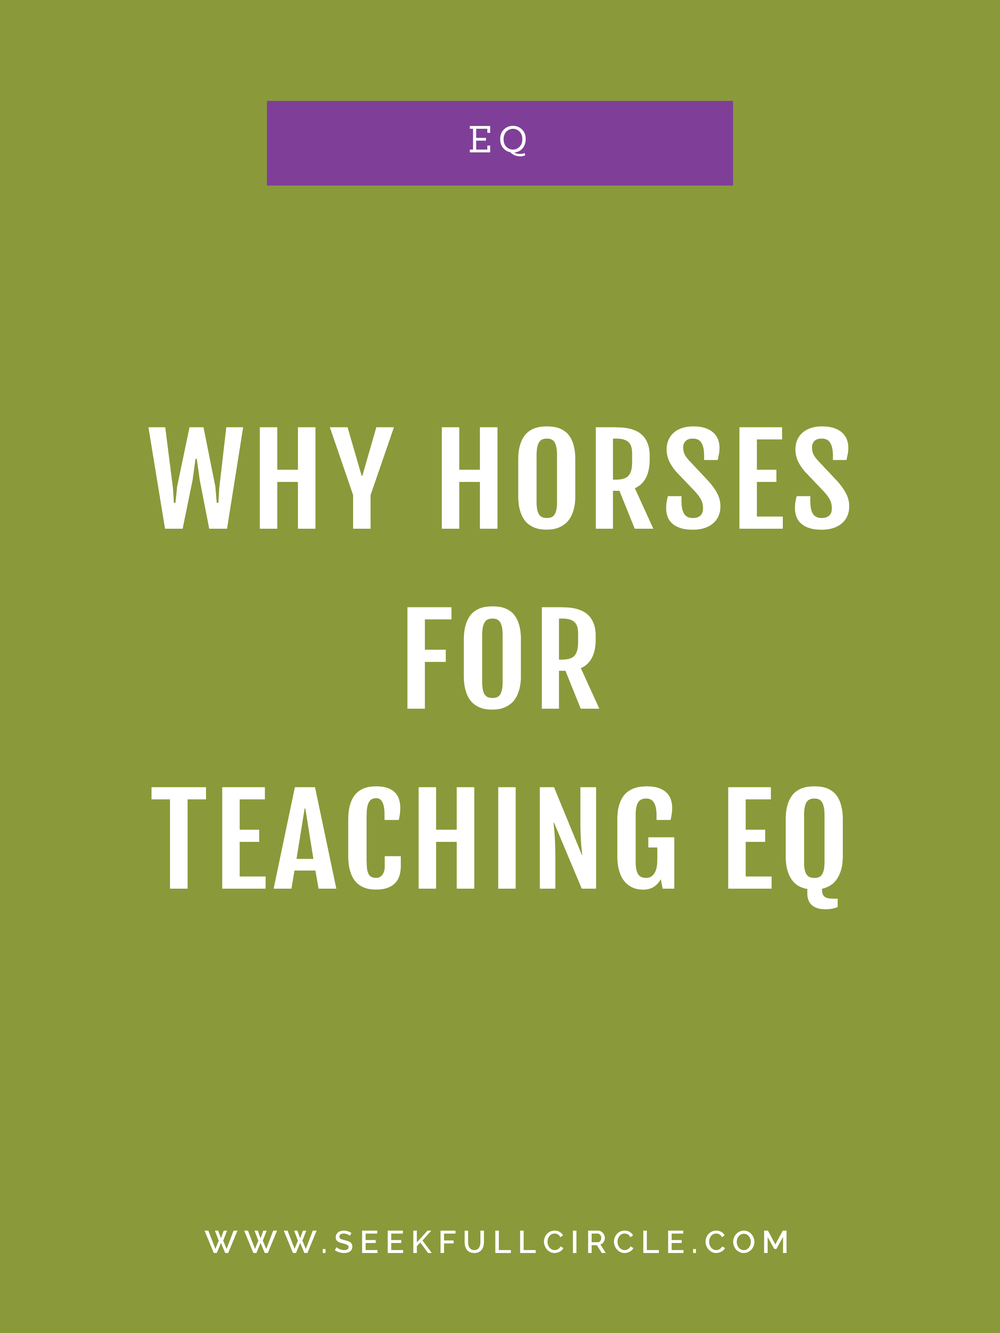 kim waltman fullcircle creative + coaching why horses eq blog